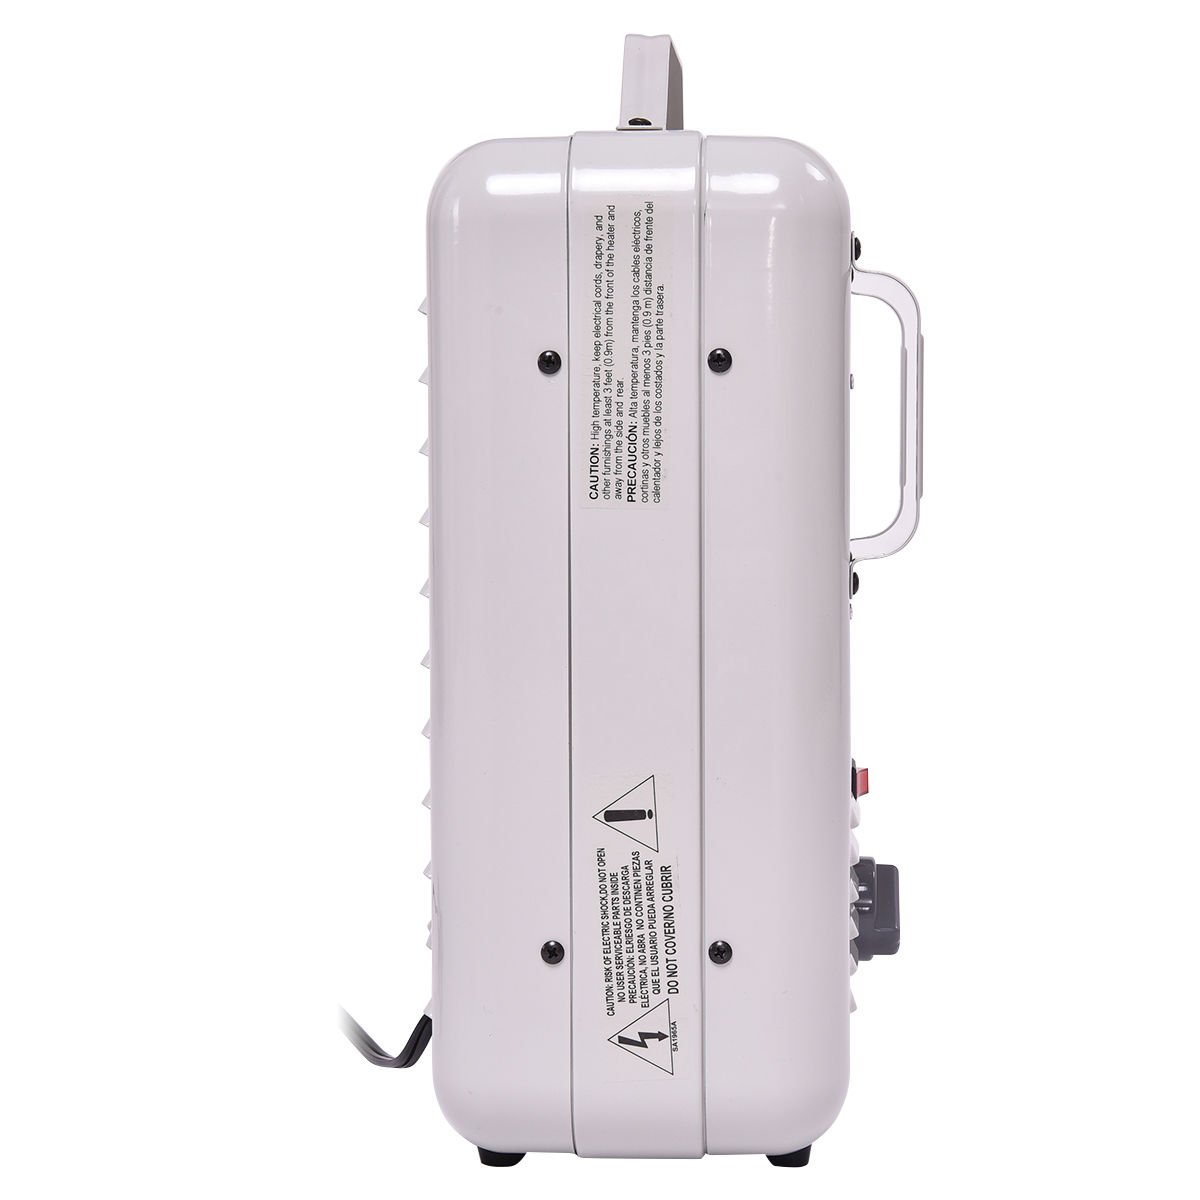 LA BOVA Electric Portable Utility Space Heater Thermostat Room 1500W Air Heating Wall - - Amazon.com